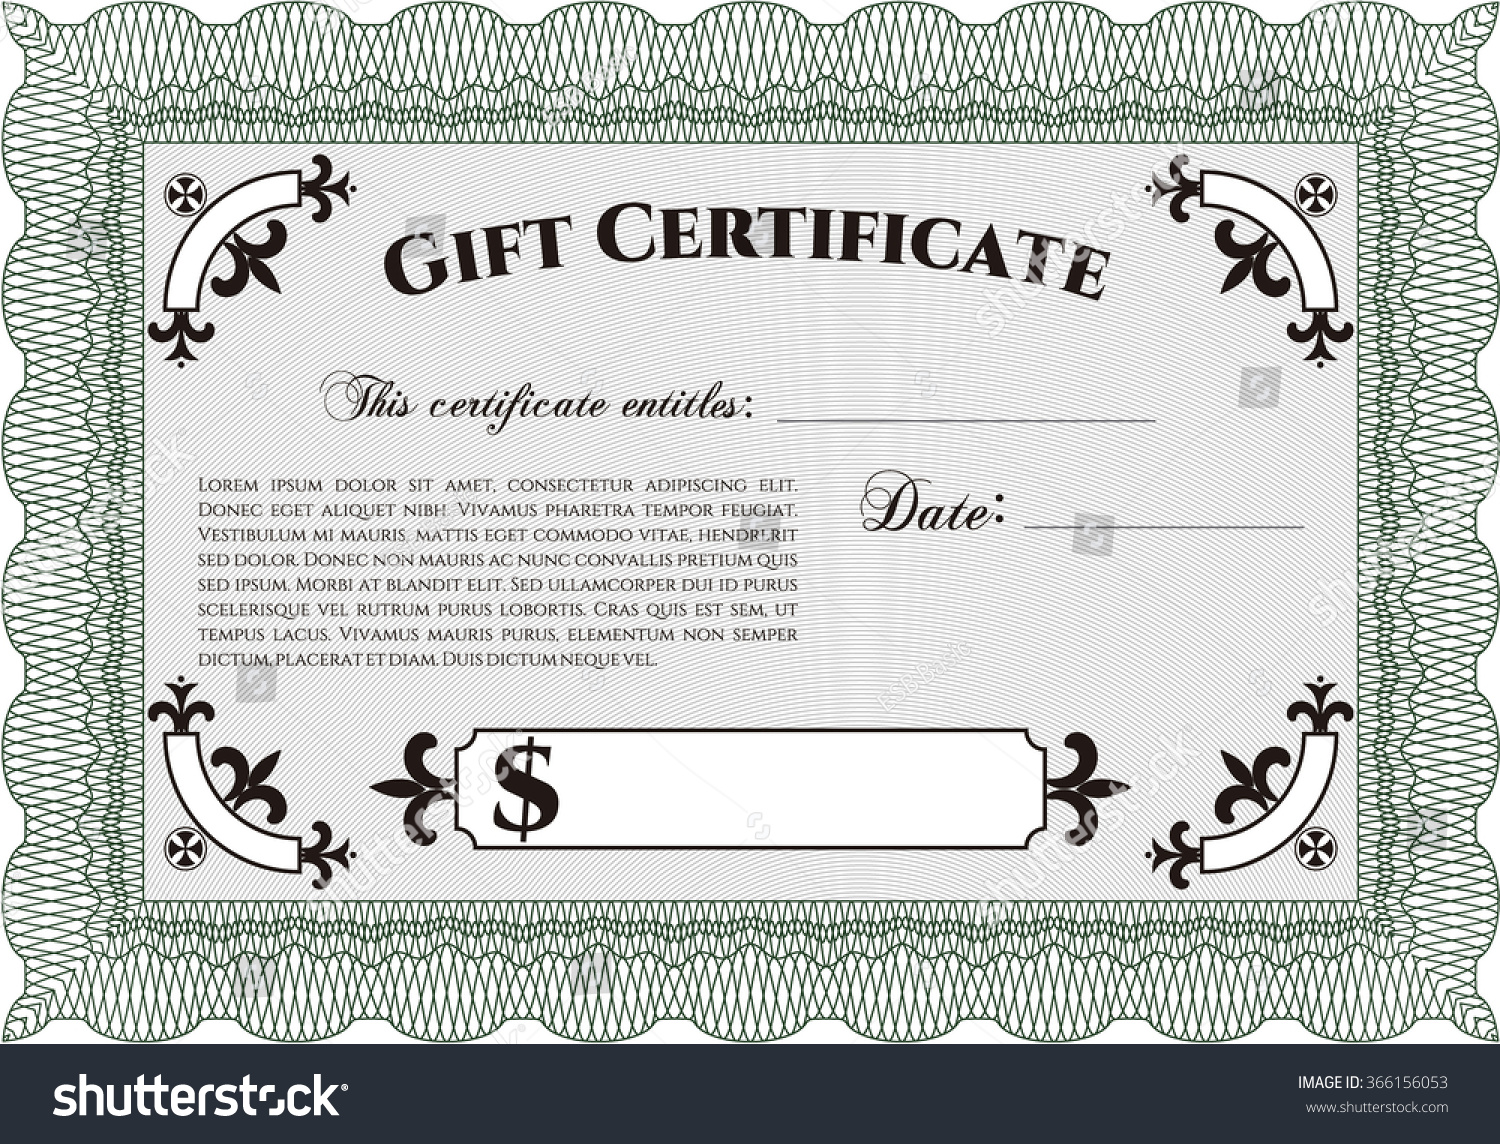 Retro gift certificate template detailedsuperior design stock retro gift certificate template detailedperior design with background yadclub Image collections